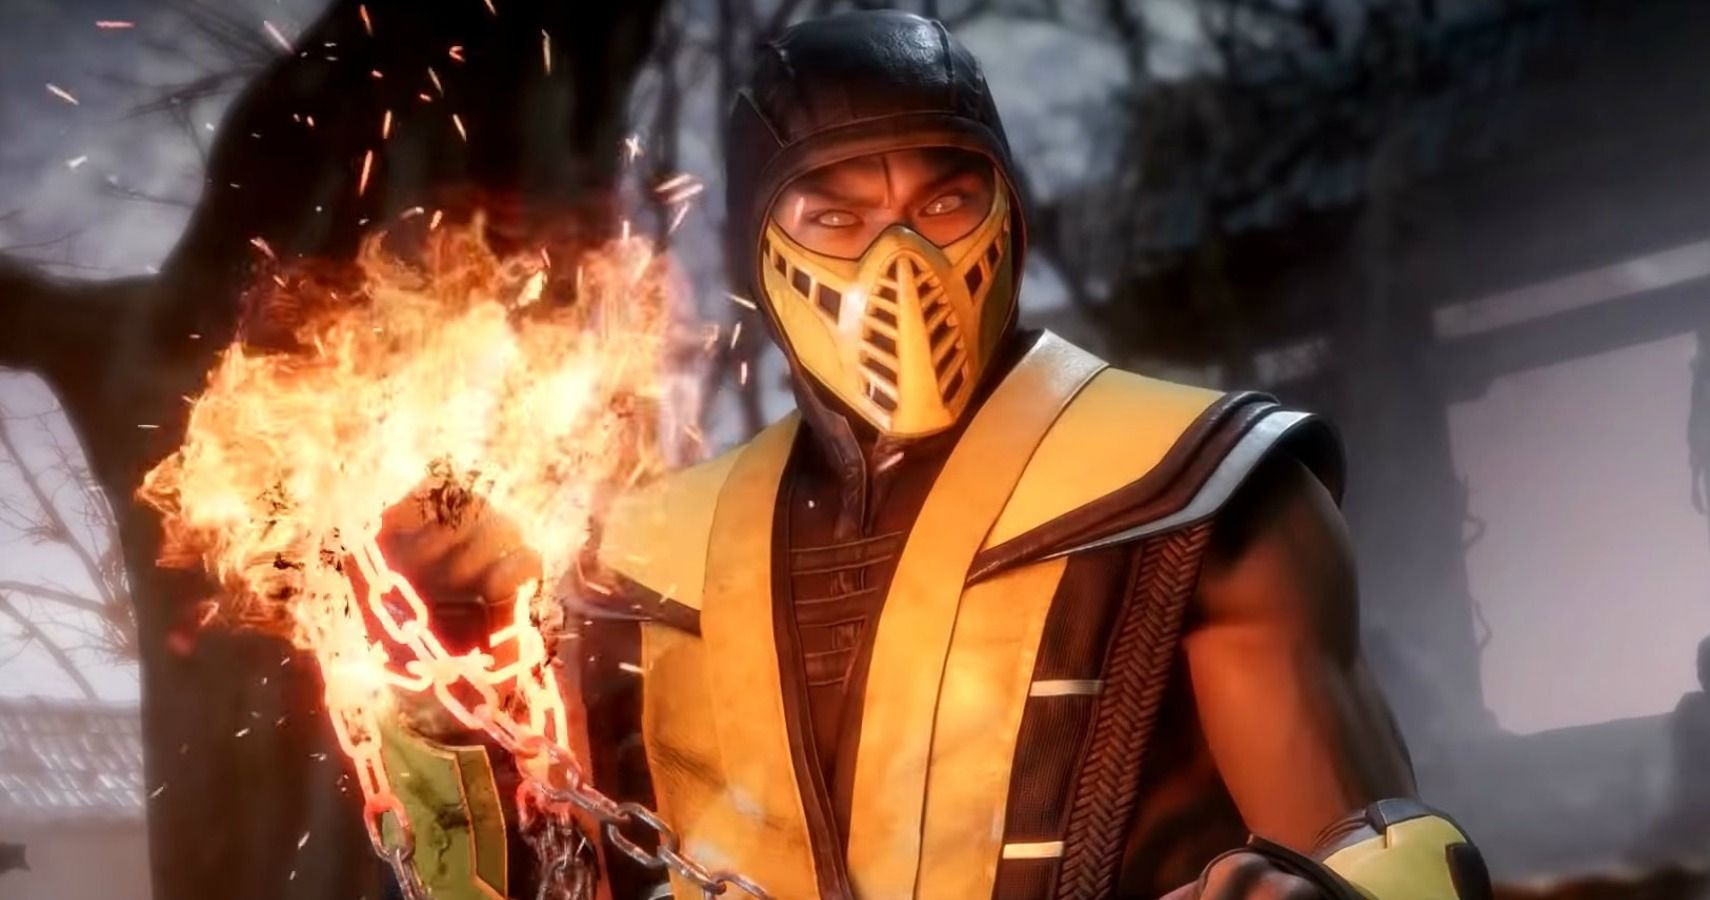 Mortal Kombat 10 Interesting Facts About Scorpion That You Might